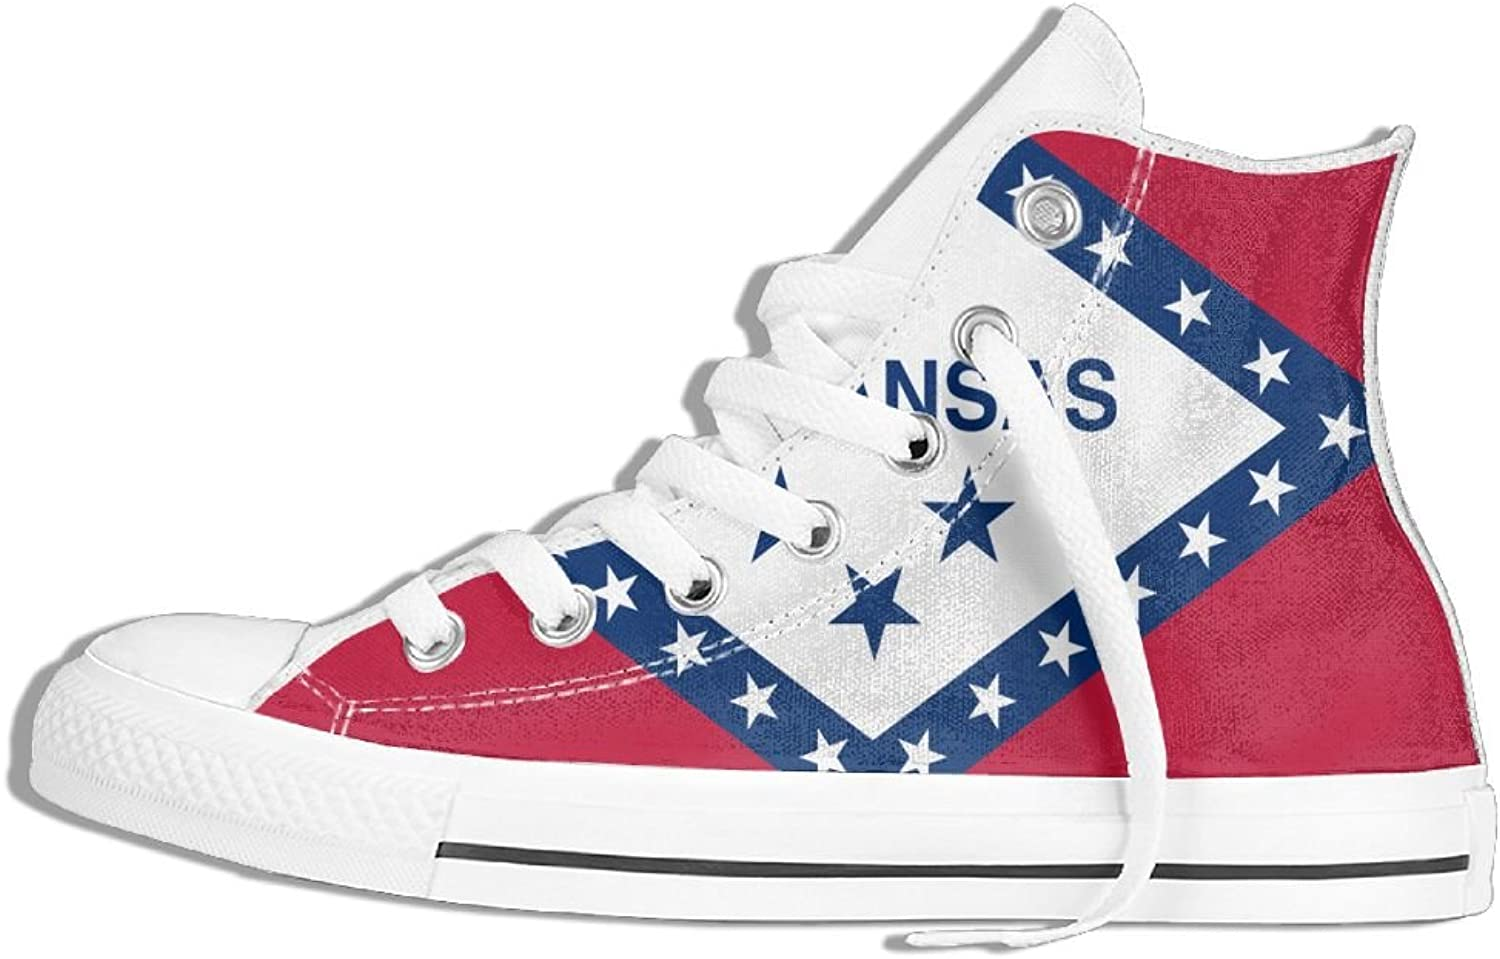 Unisex High Top Sneakers Arkansas Flag Classic Canvas shoes Breathable Sneaker